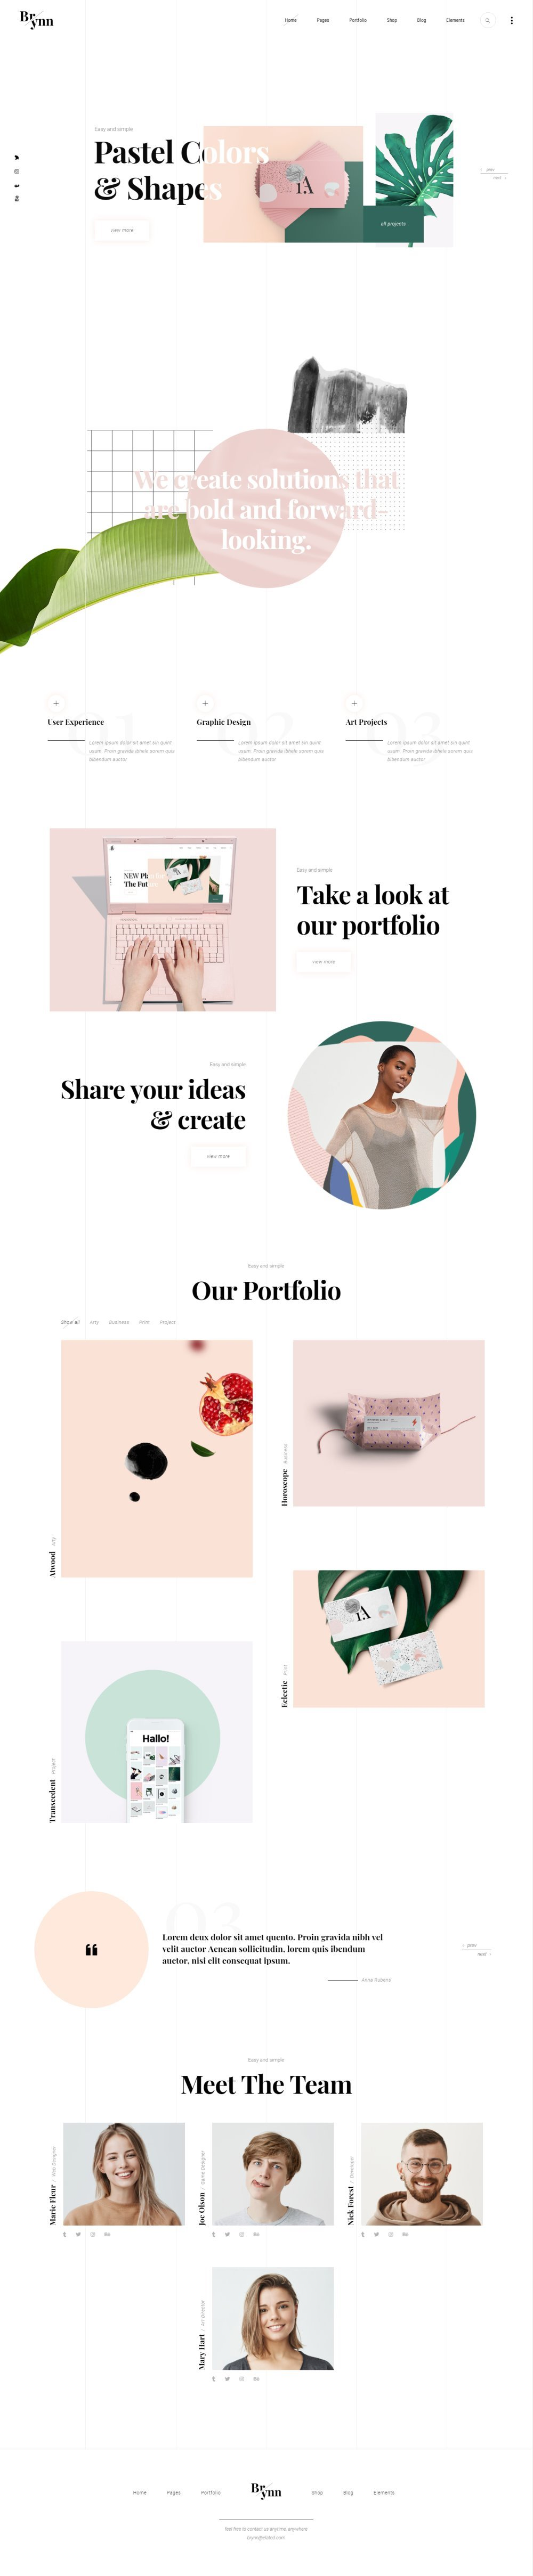 Best-WordPress-Themes-and-Web-Design-for-Creatives-001